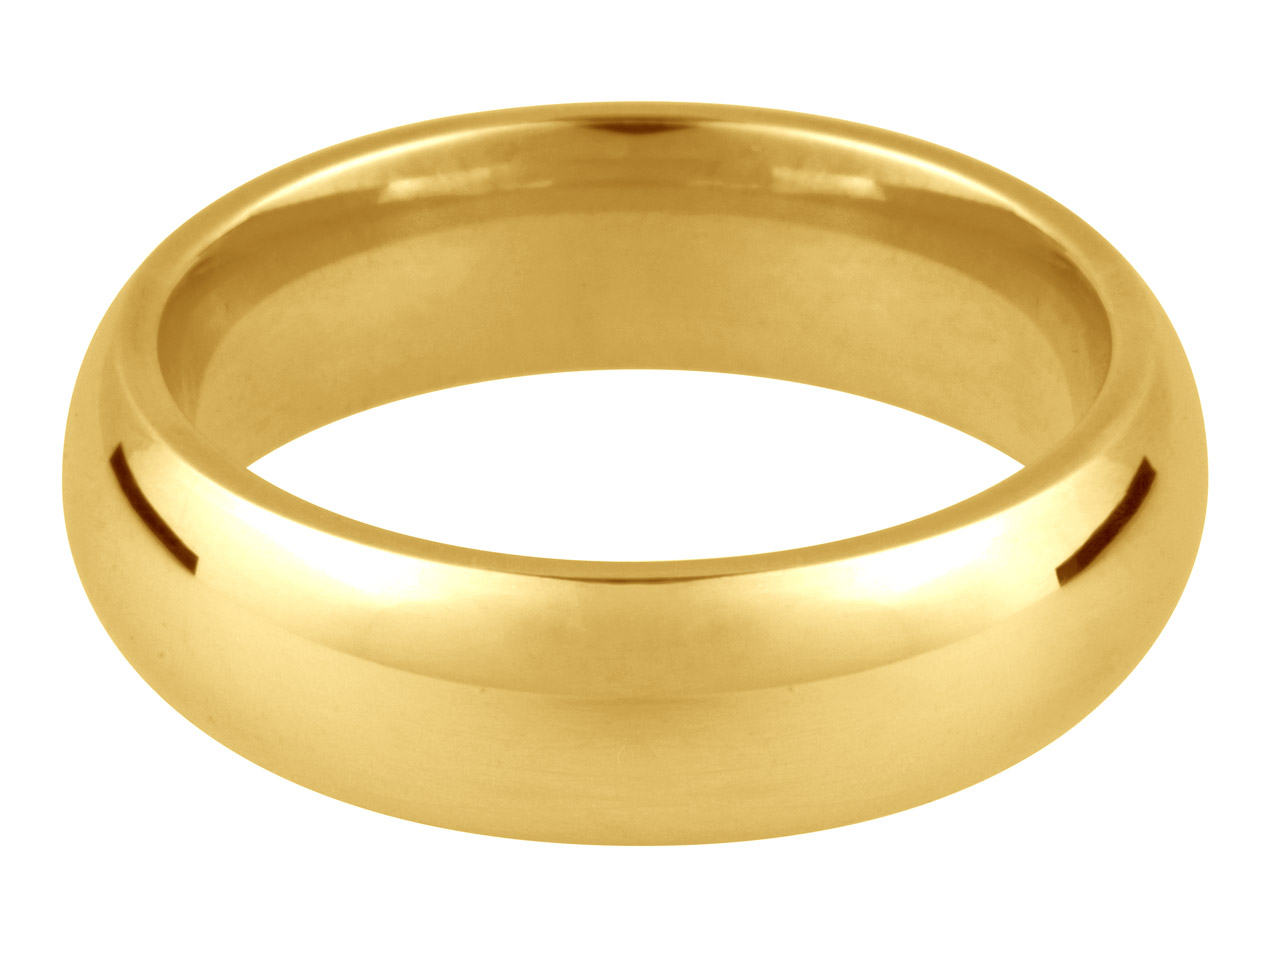 9ct Yellow Court Wedding Ring 2.0mm L 2.1gms Heavy Weight Hallmarked    Wall Thickness 1.76mm